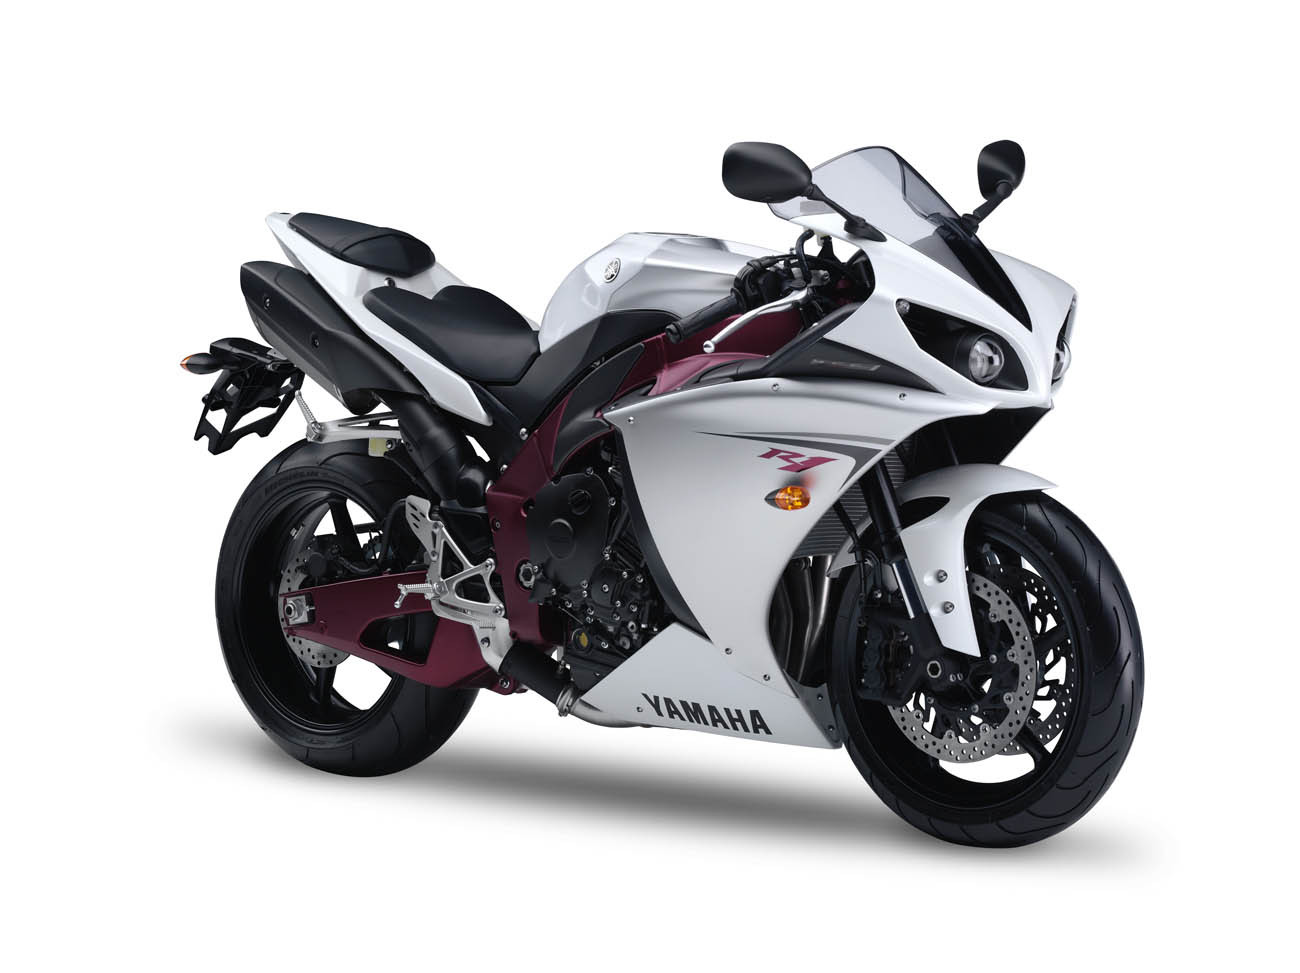 yamaha yzf r1 2009 rn22 14b decals set white red eu version moto. Black Bedroom Furniture Sets. Home Design Ideas